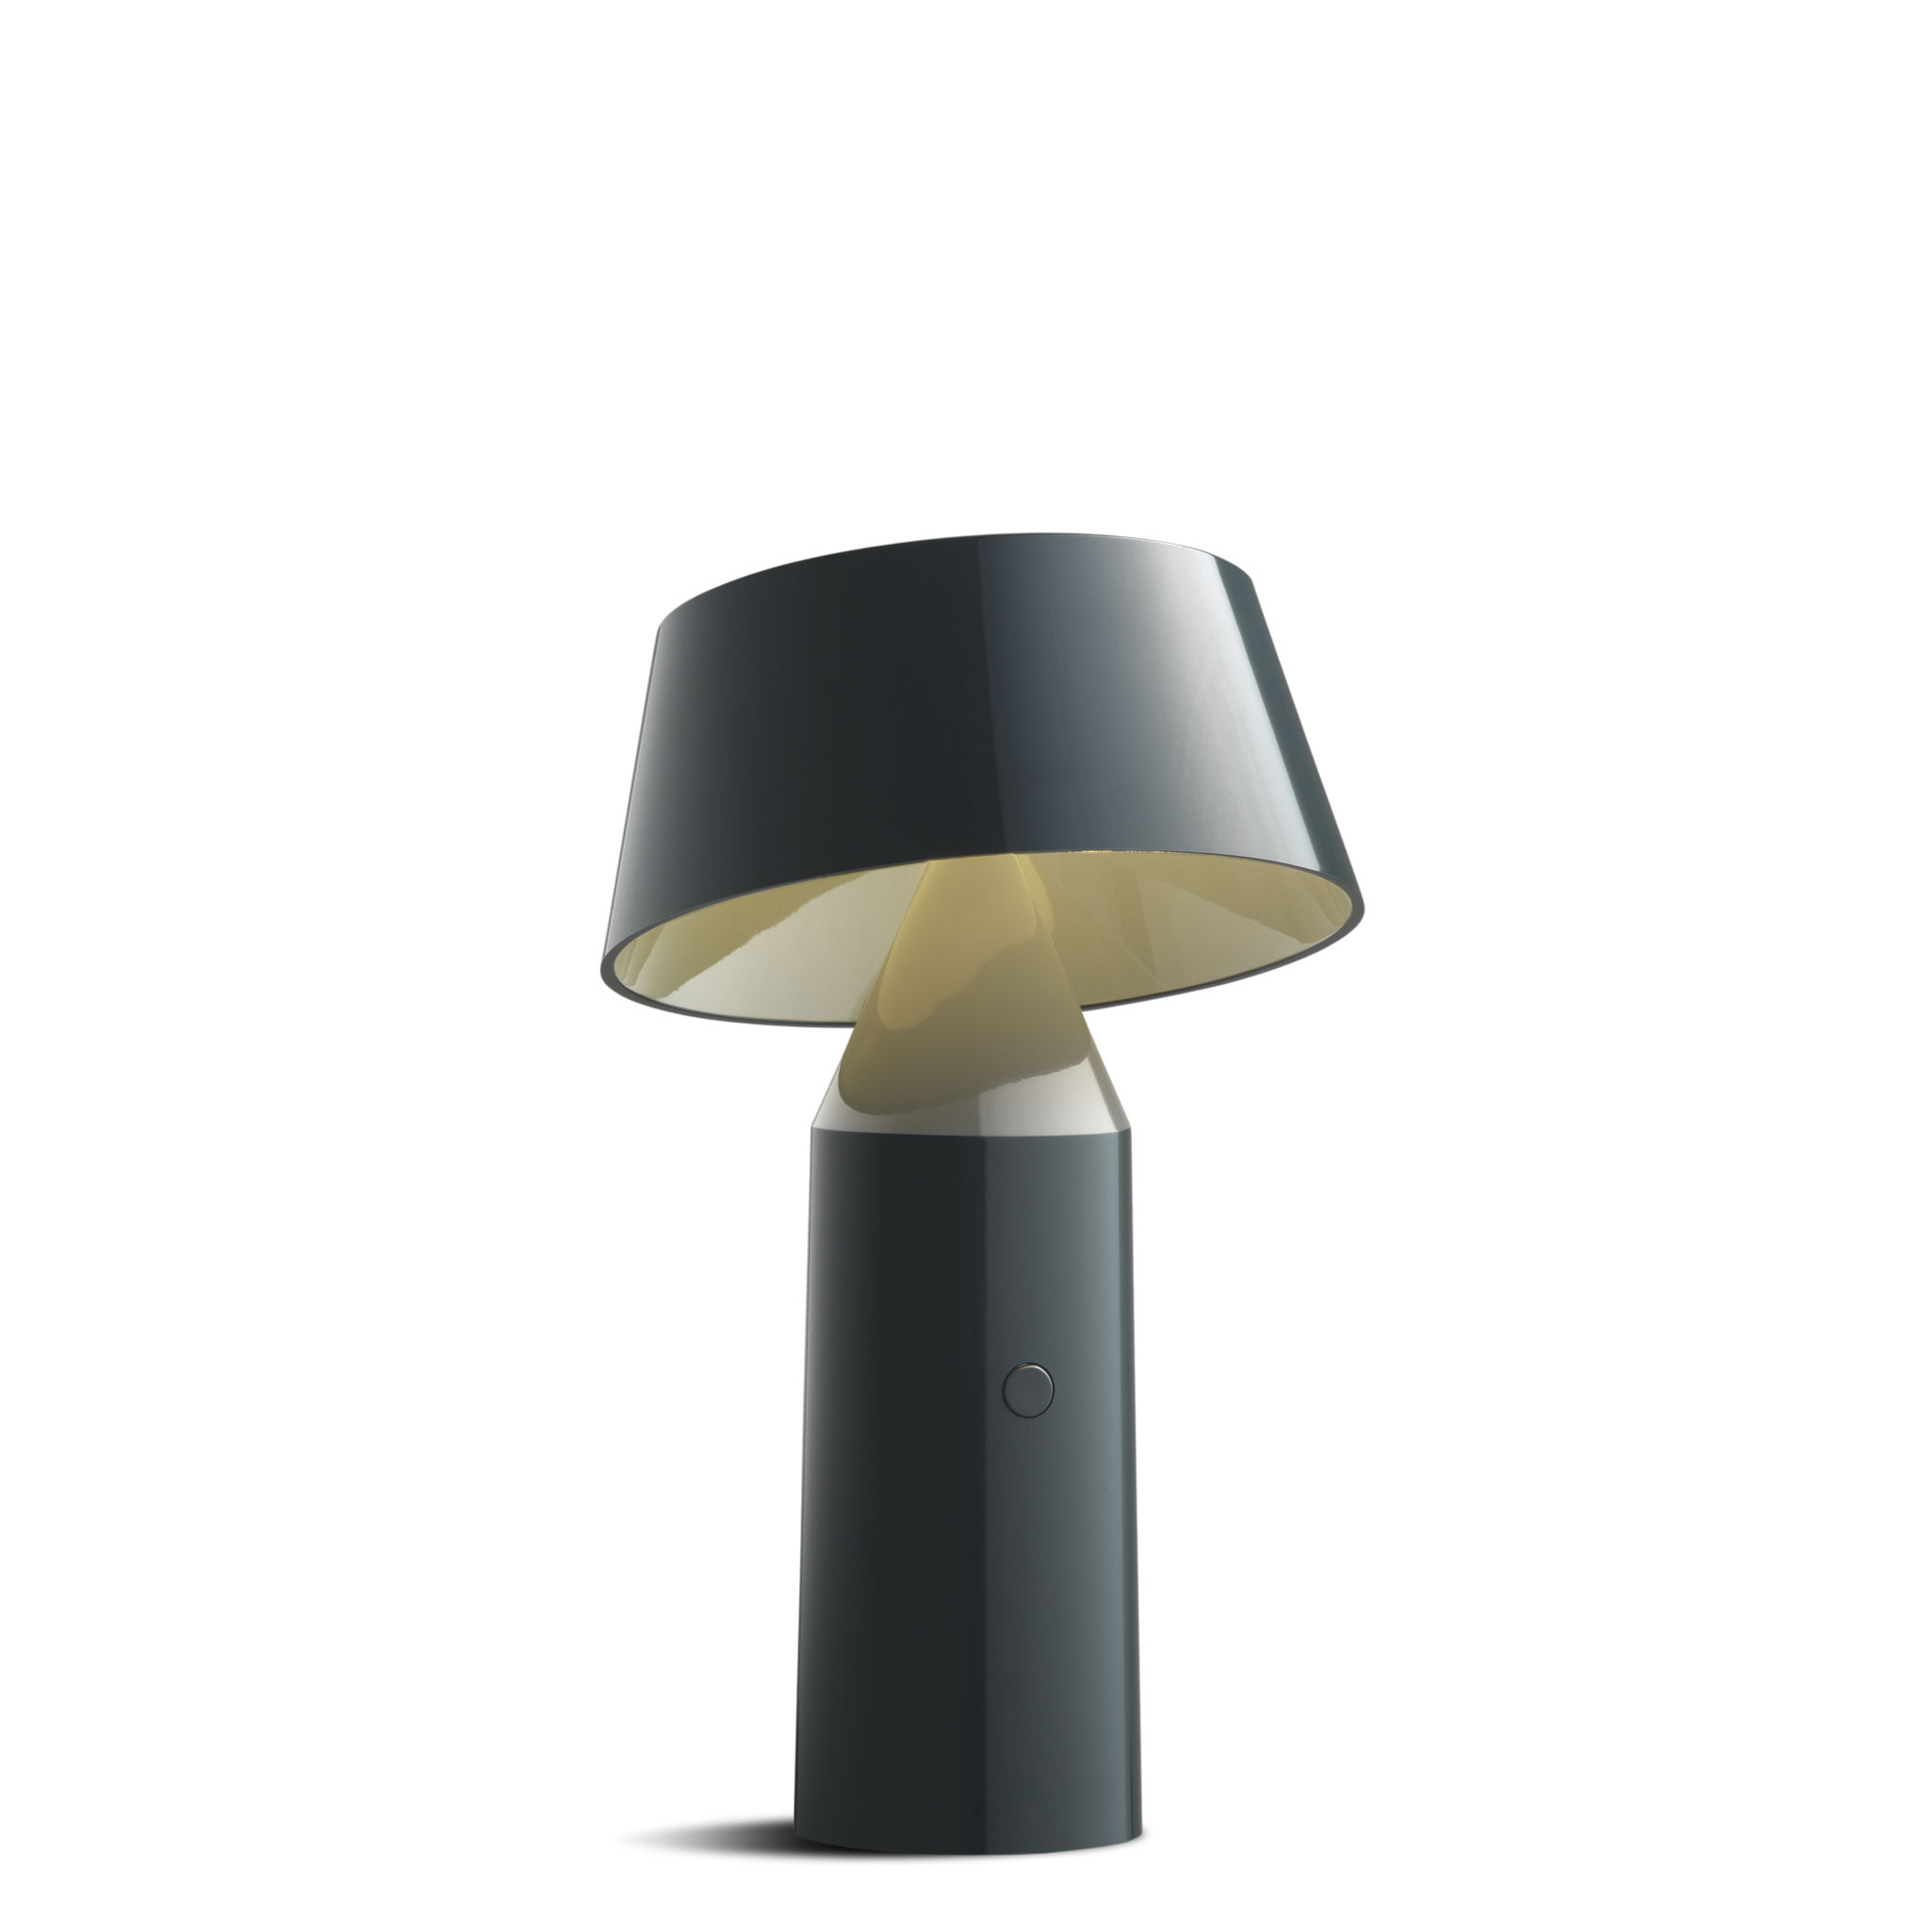 Lighting - Table Lamps - Bicoca Wireless lamp by Marset - Charcoal grey - Polycarbonate